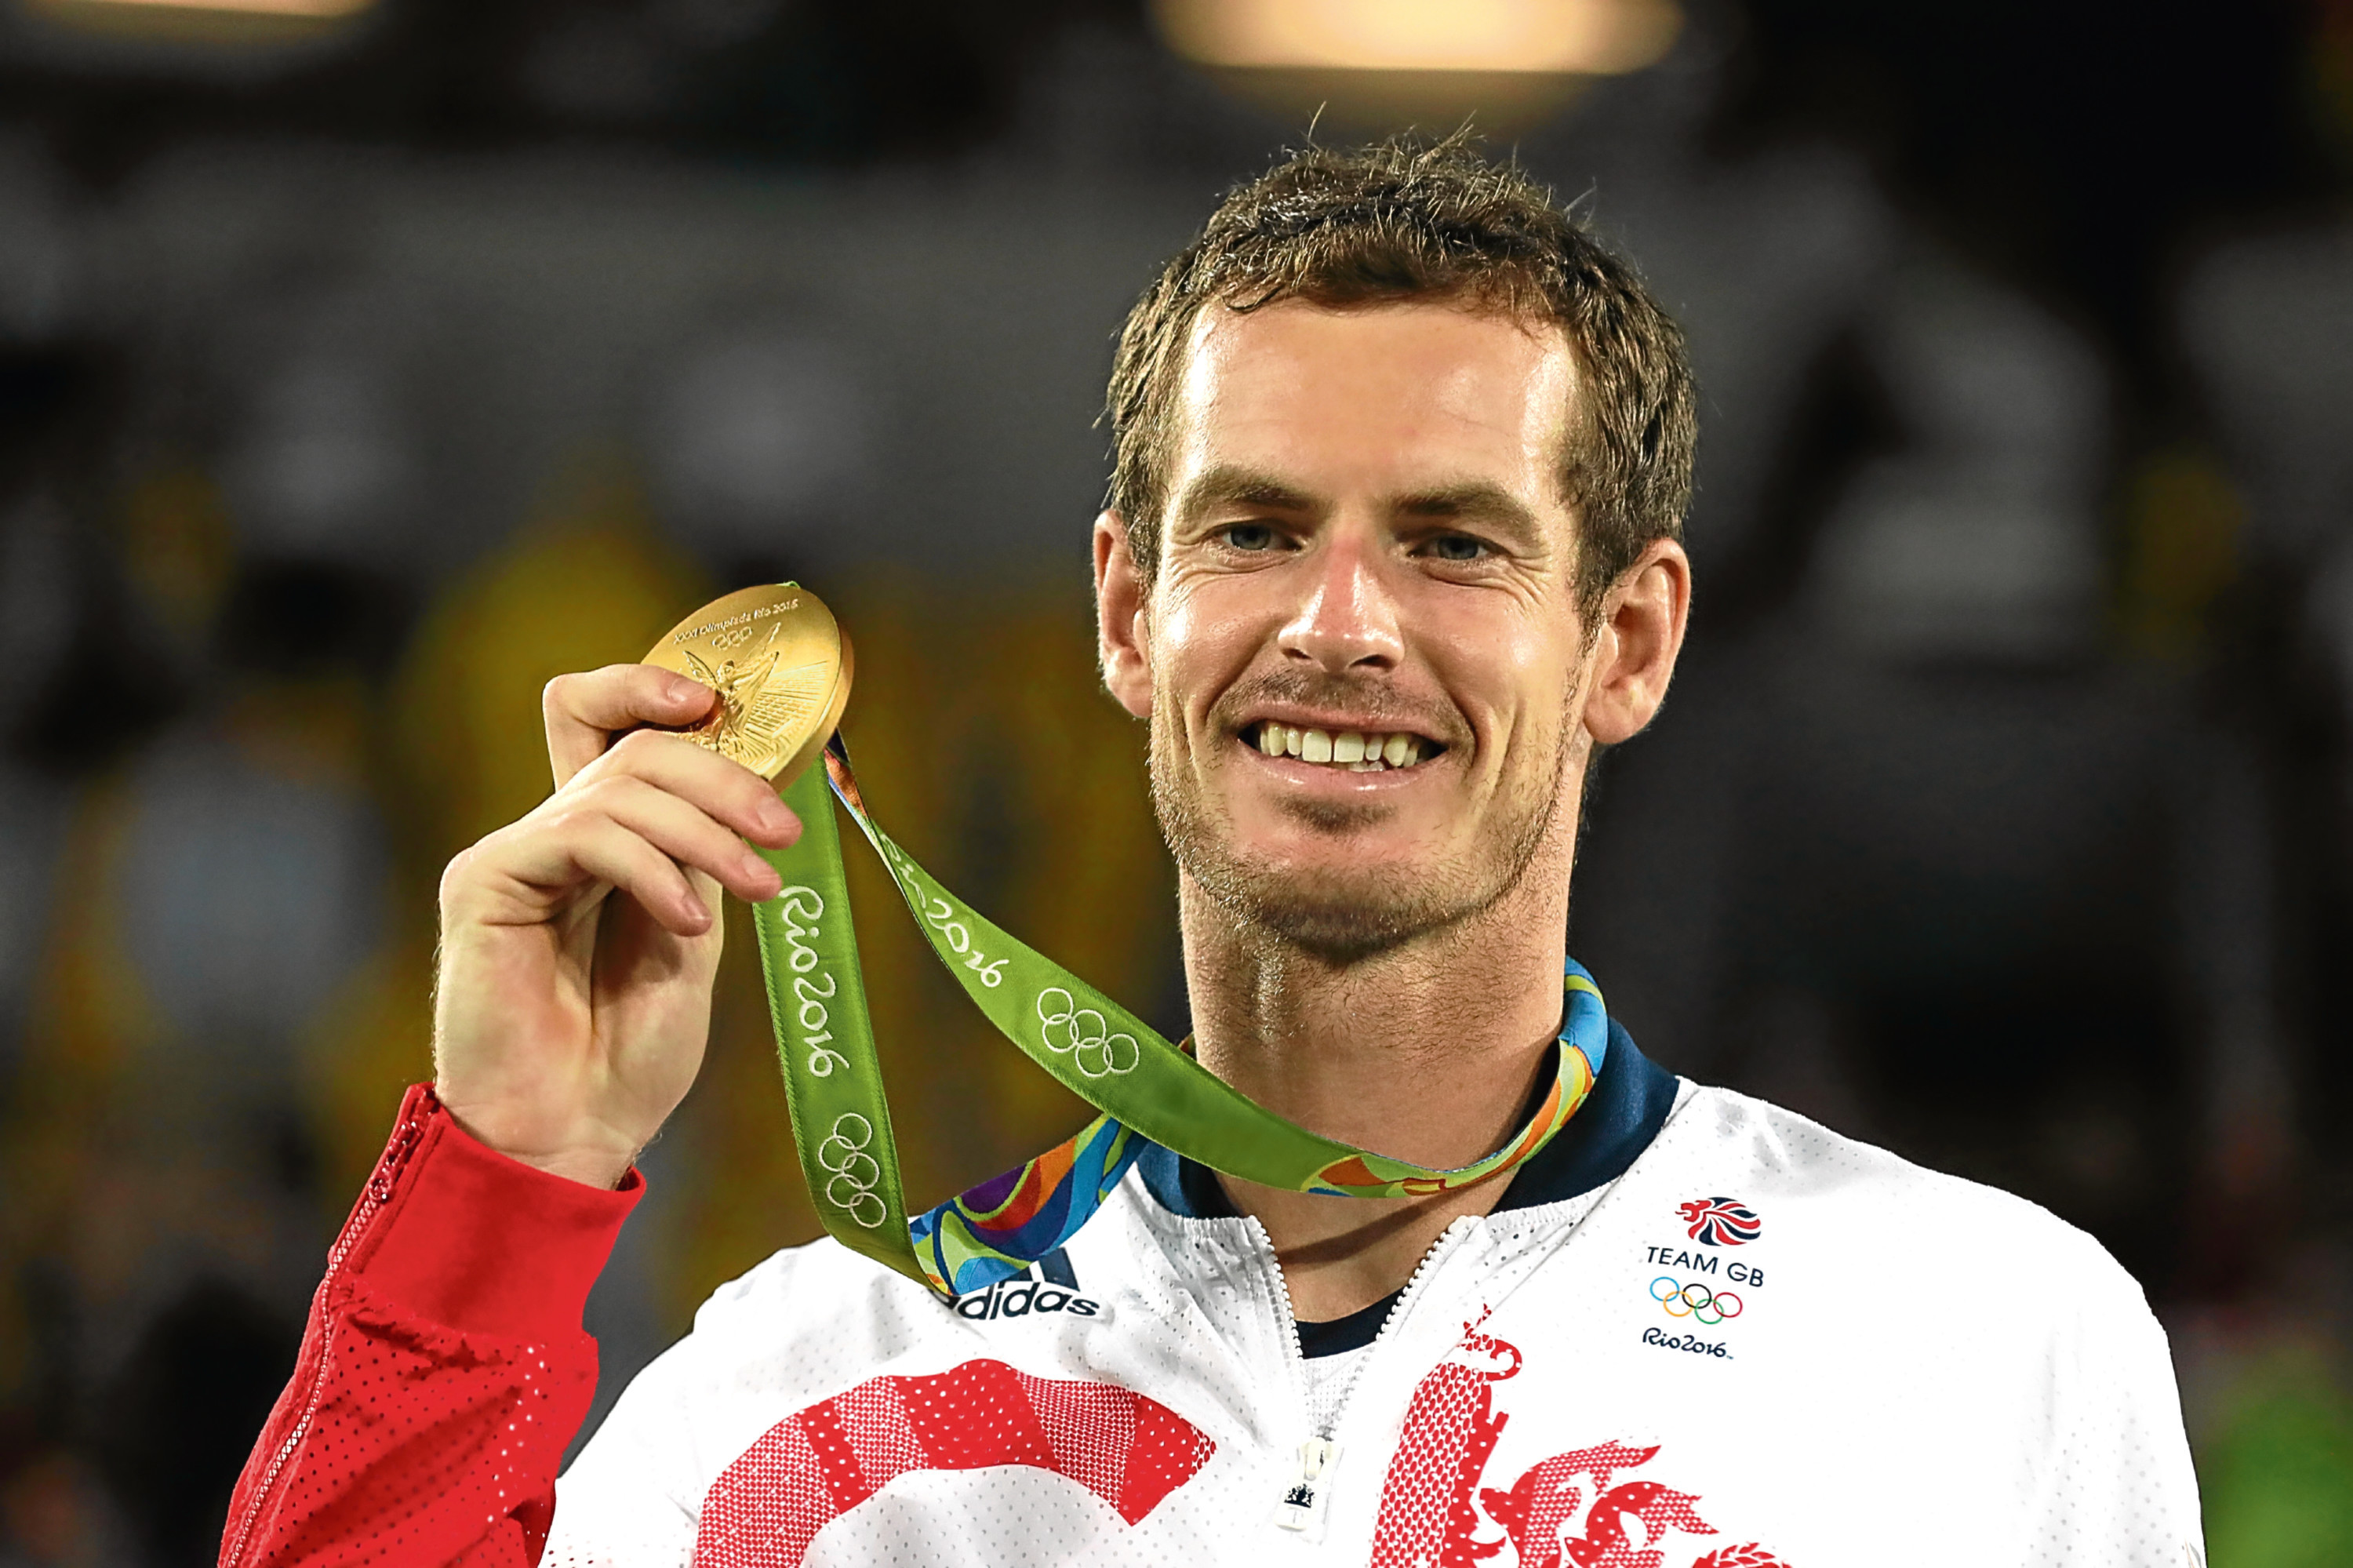 Andy Murray with his gold medal (Owen Humphreys / PA Wire)